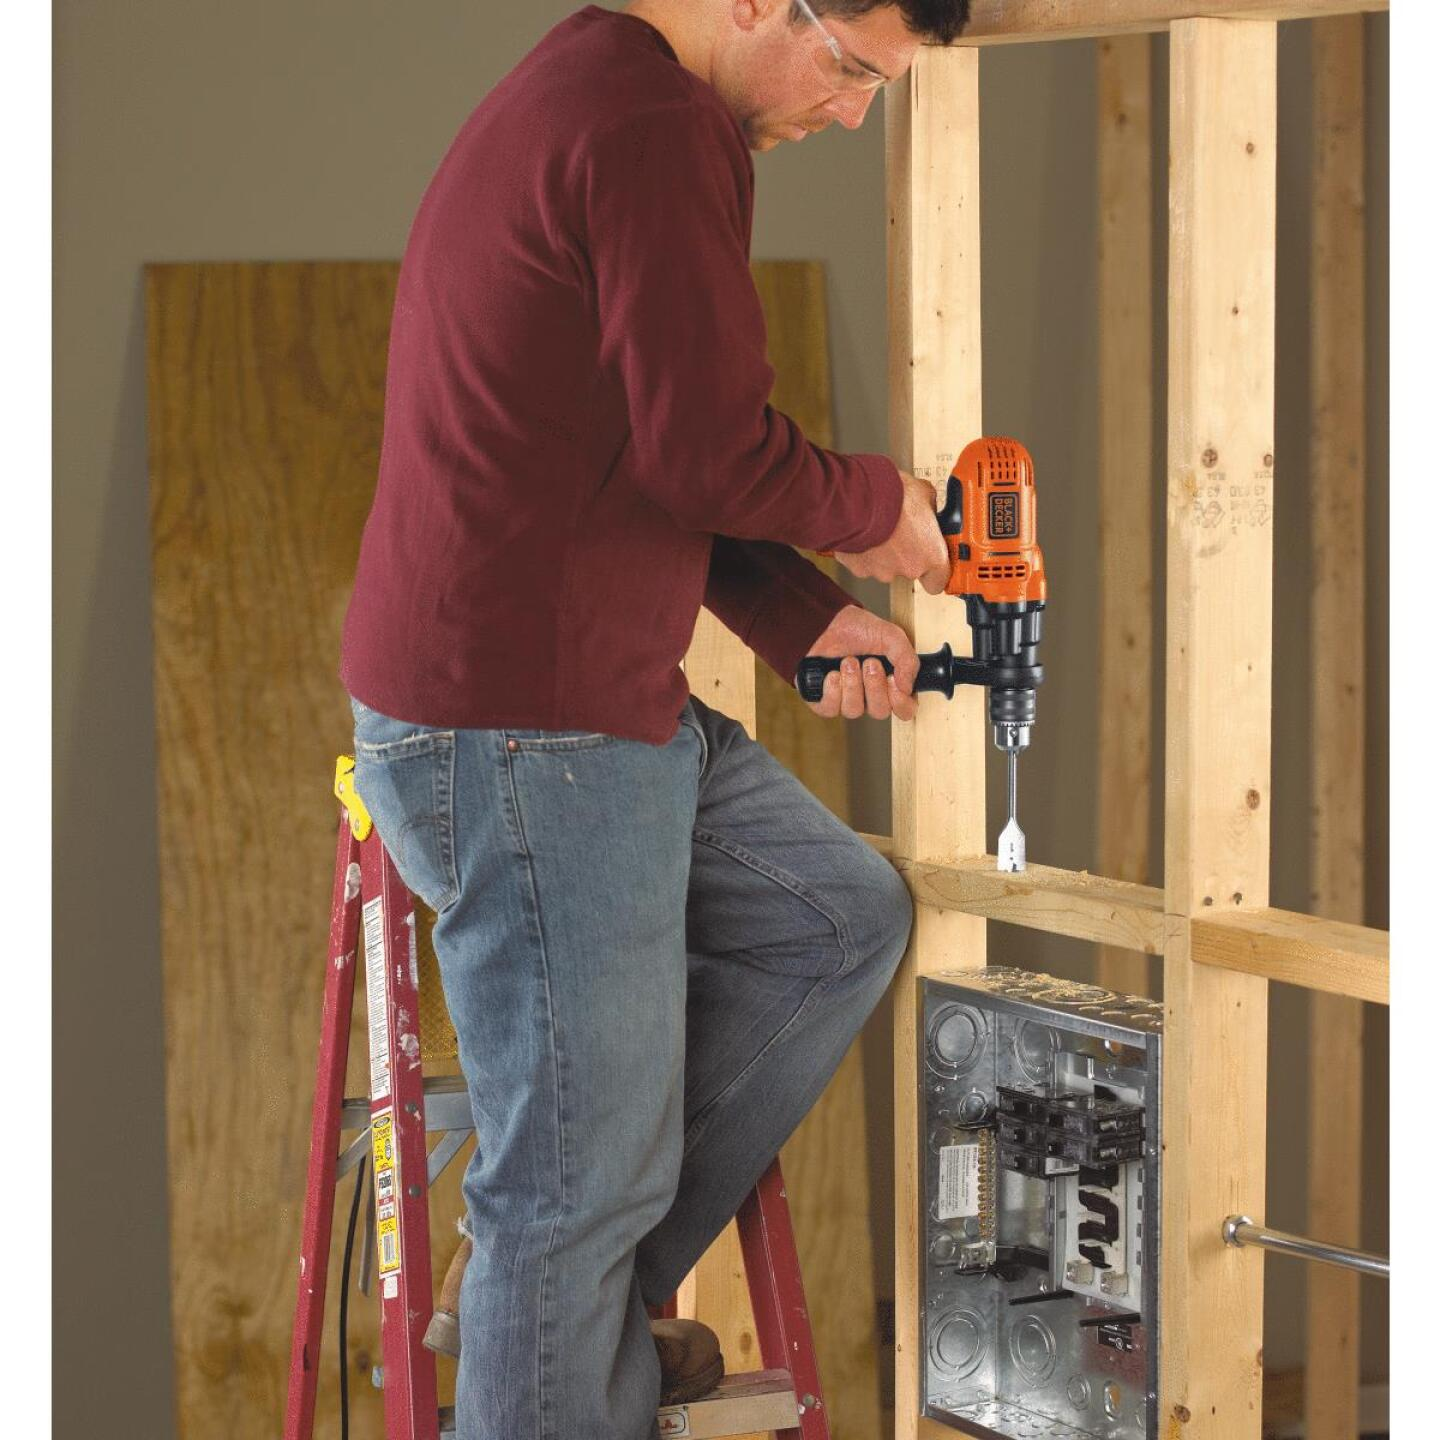 Black & Decker 1/2 In. 7-Amp Keyed Electric Drill/Driver Image 4